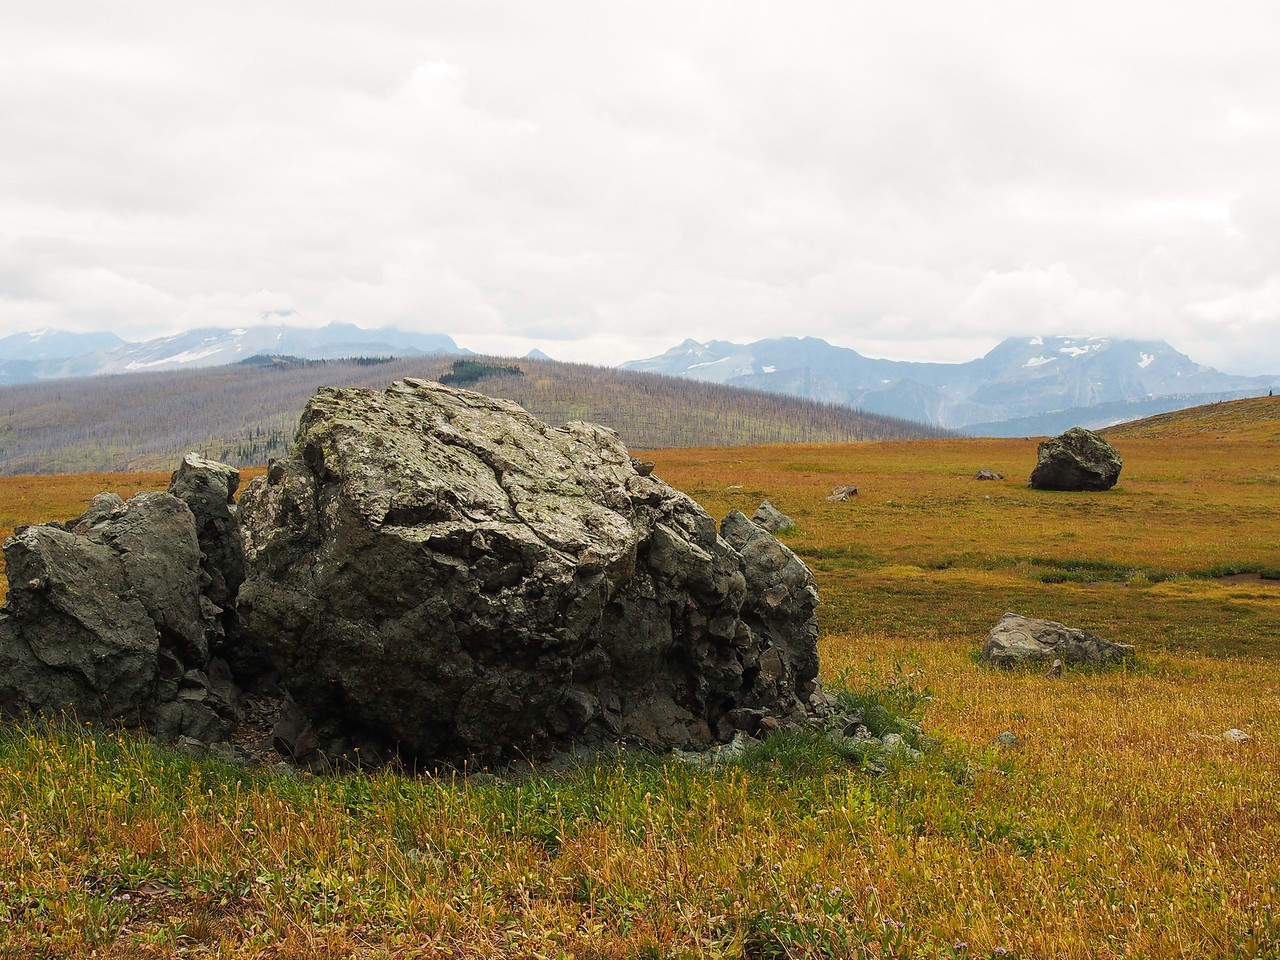 Day 3/5 - Boulders down from Cathedral Peak, Glacier NP